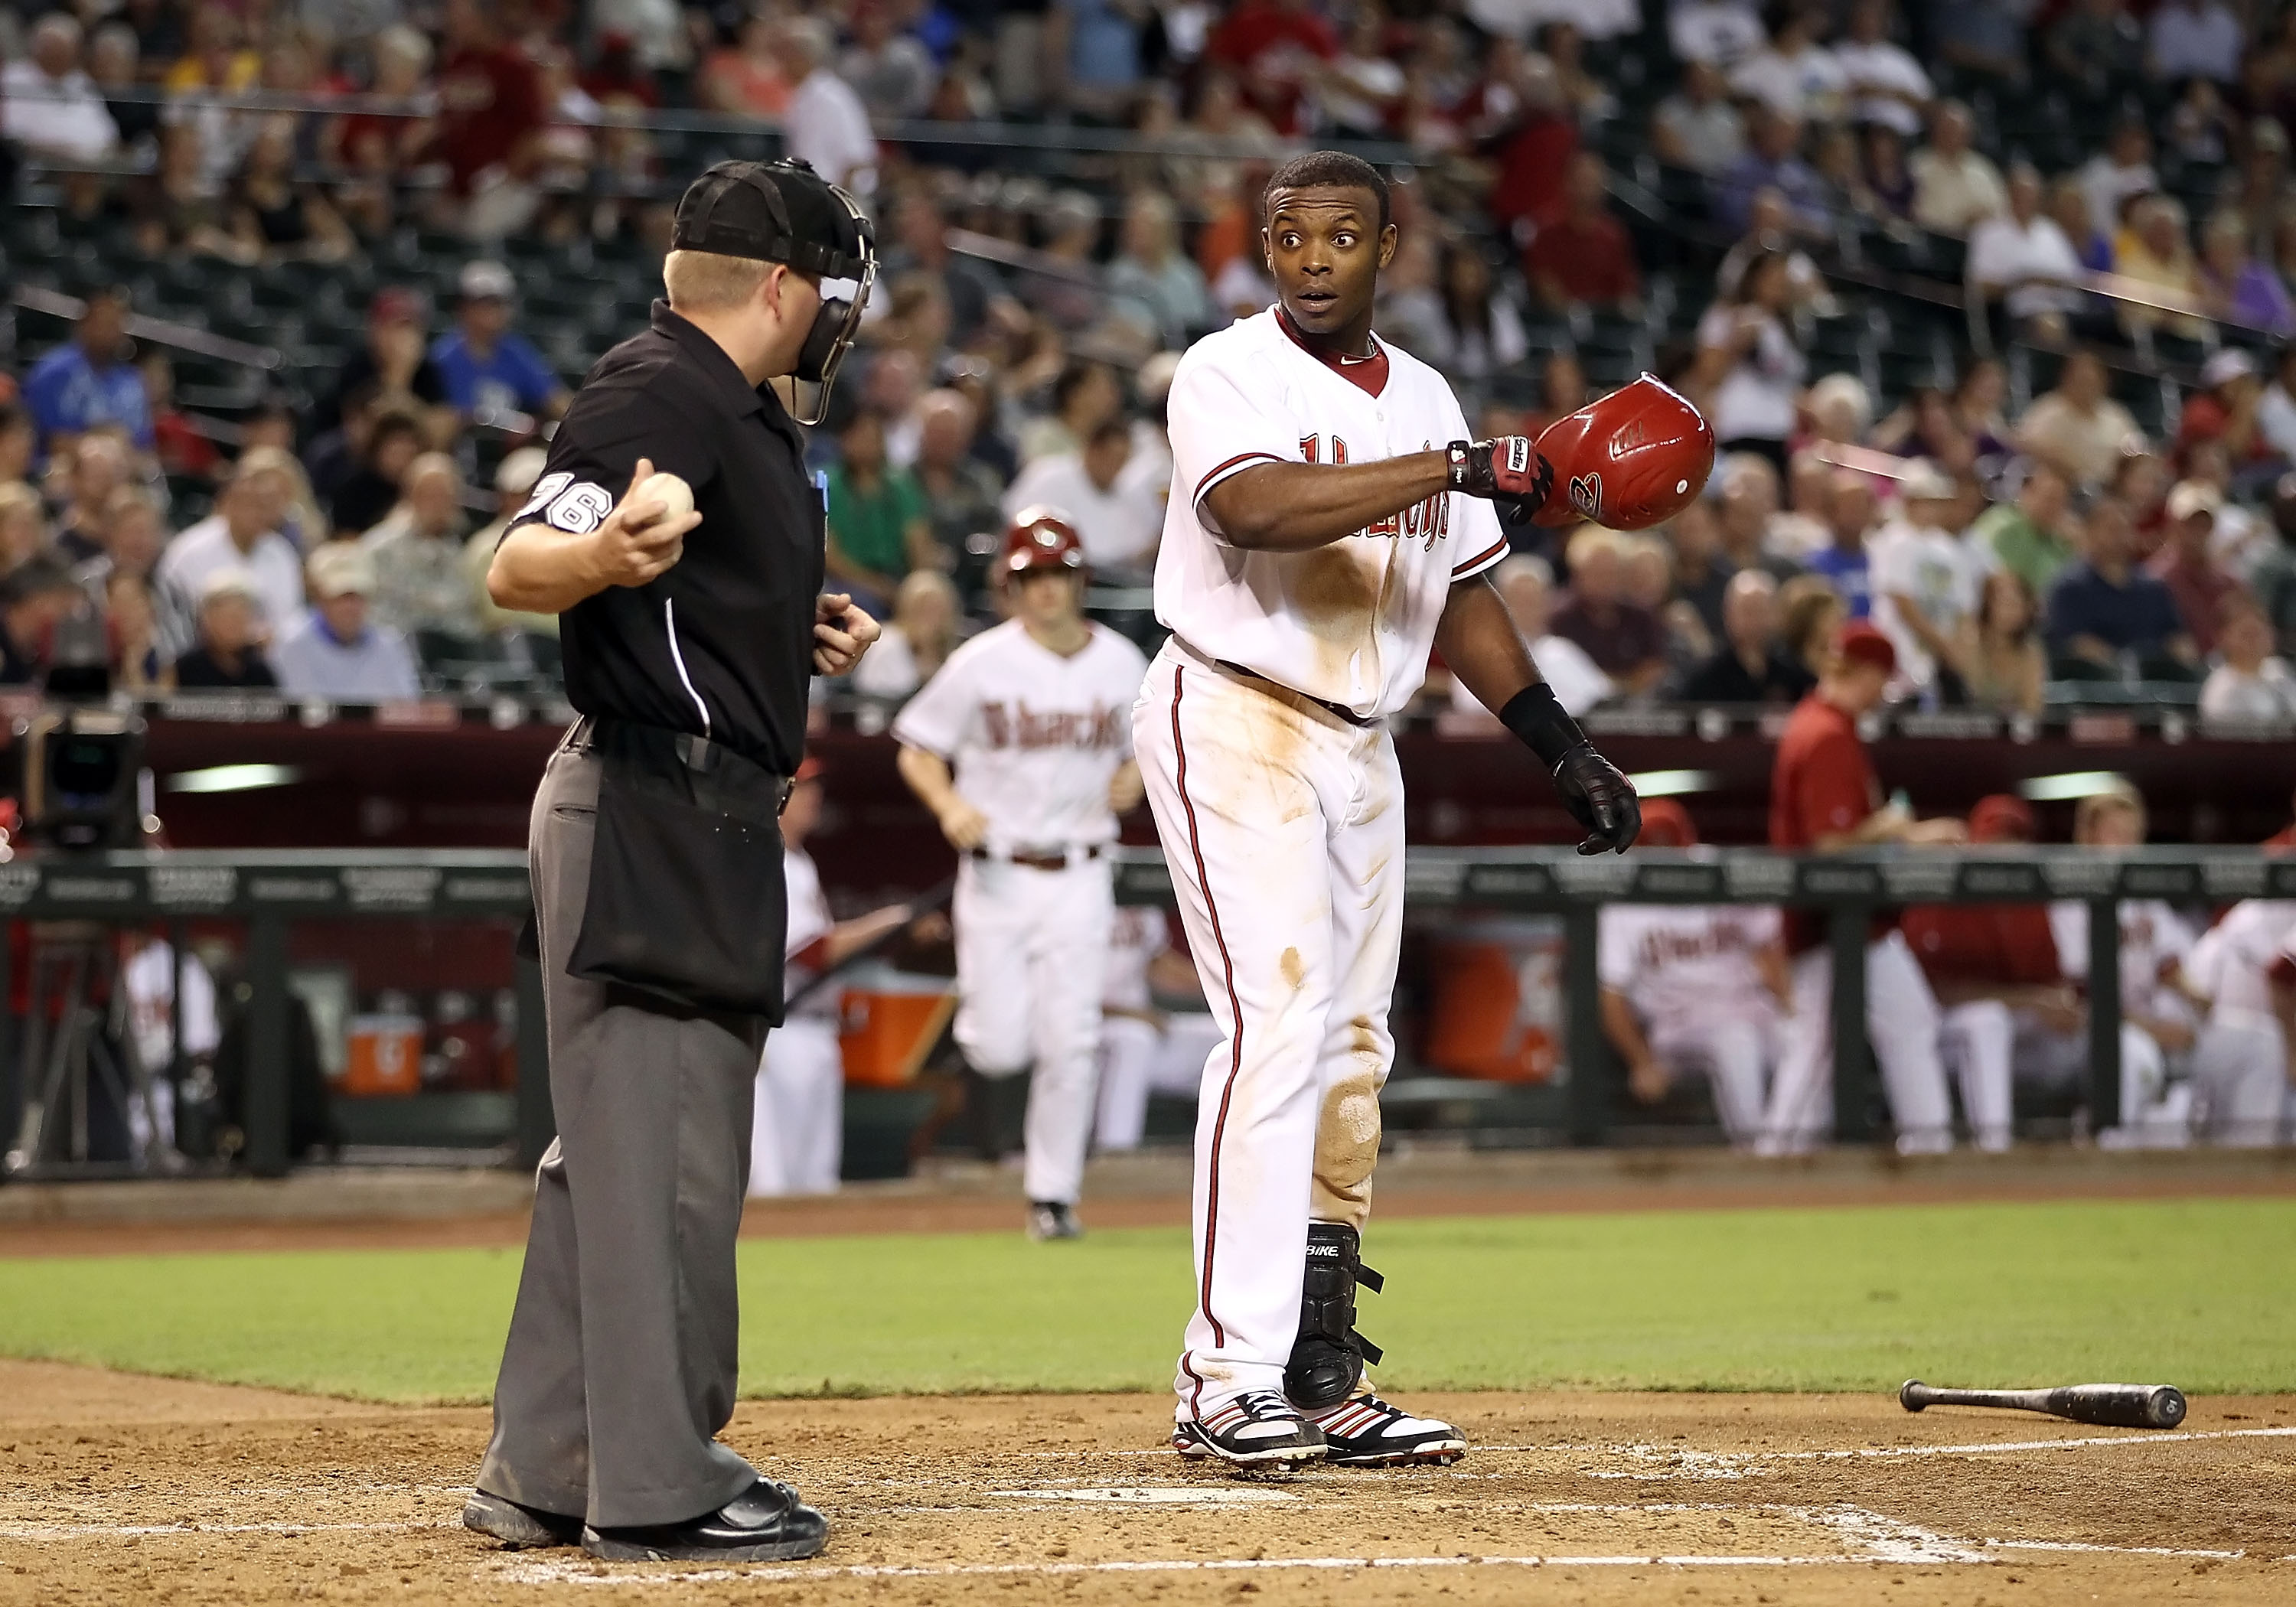 PHOENIX - AUGUST 30:  Justin Upton #24 of the Arizona Diamondbacks reacts after striking out during the Major League Baseball game against the San Diego Padres at Chase Field on August 30, 2010 in Phoenix, Arizona. The Diamondbacks defeated the Padres 7-2